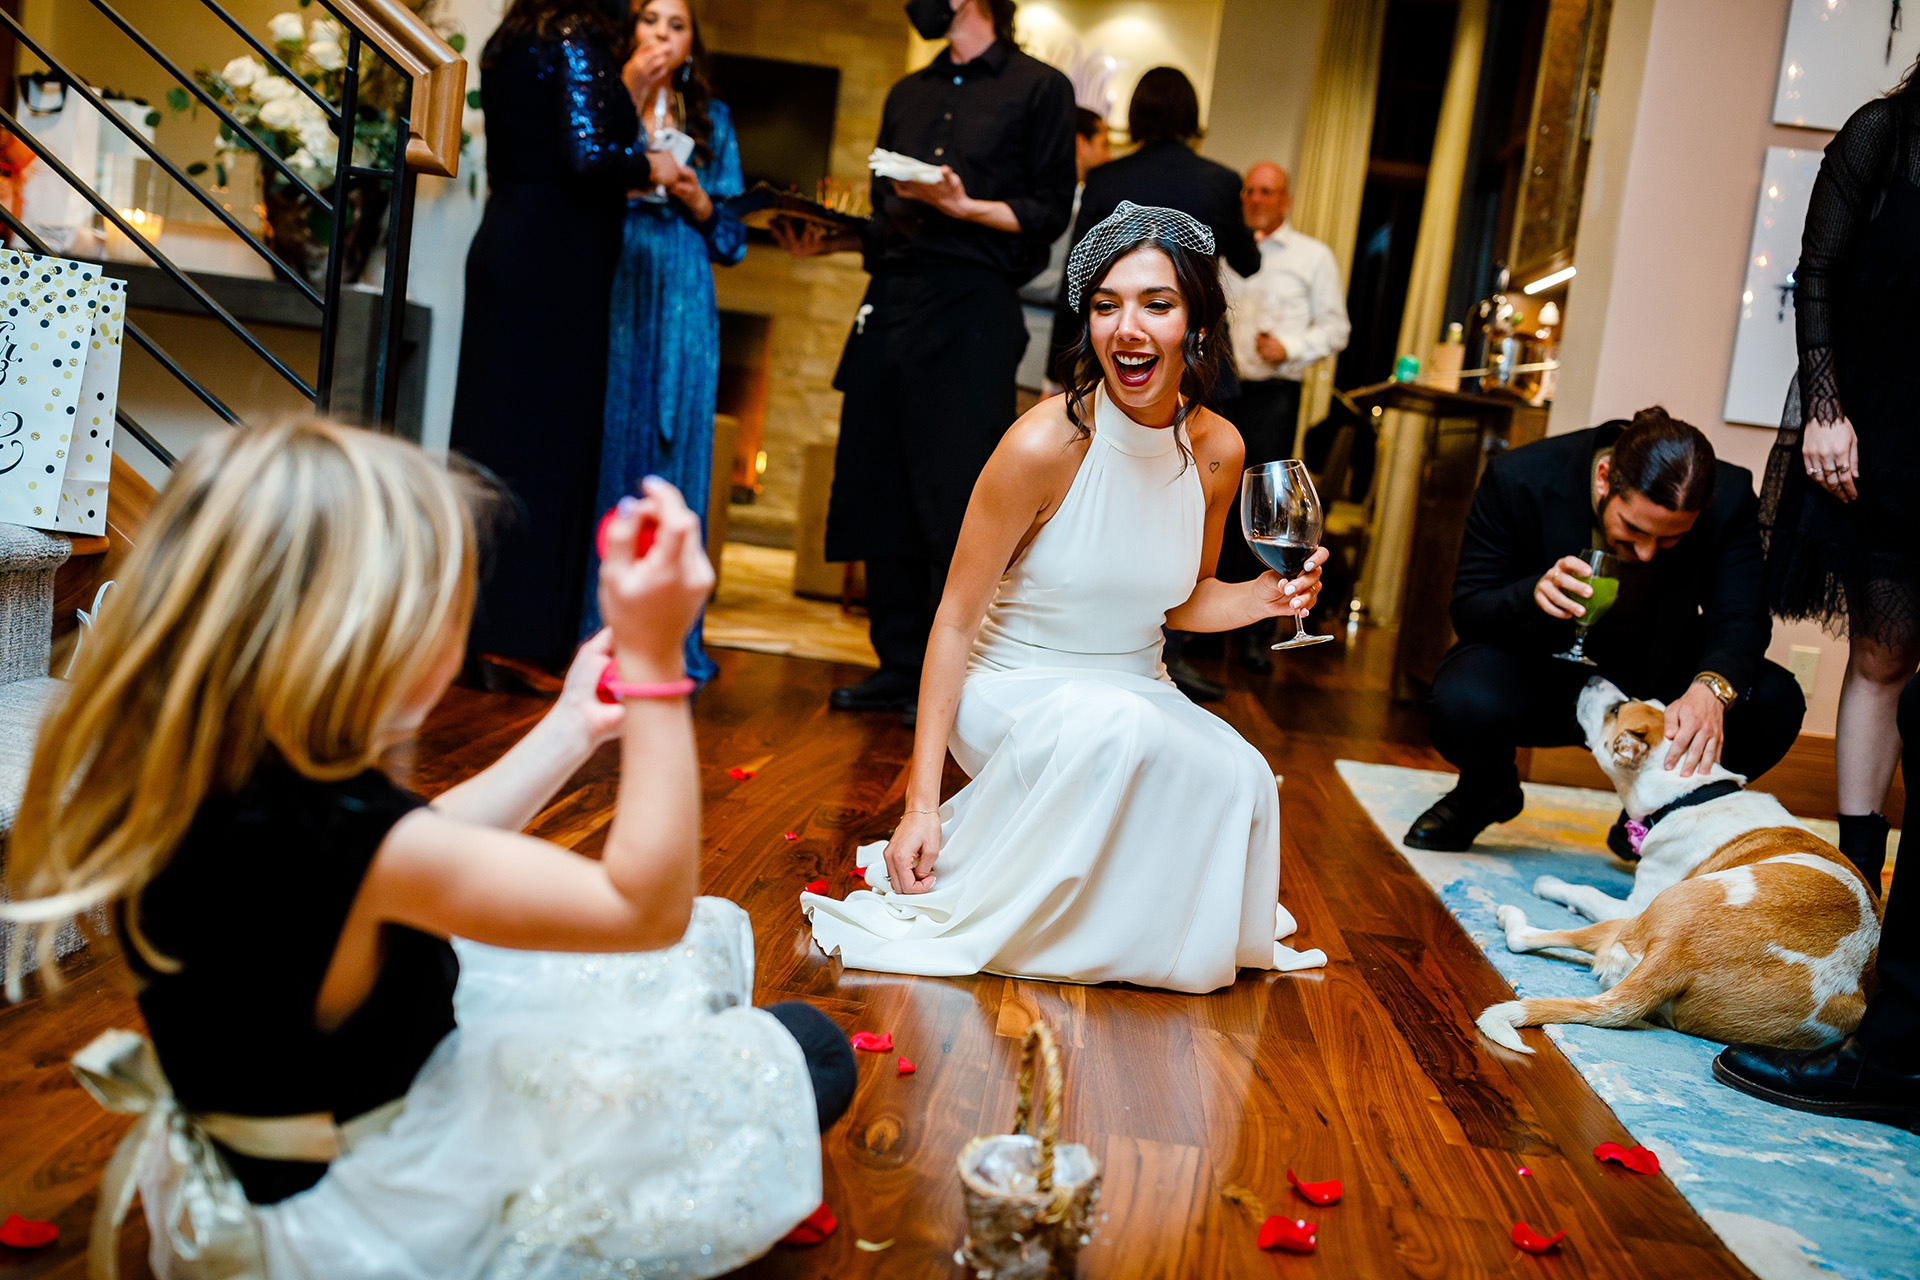 Vail Wedding Photographer - CO Weddings | all the elements of a blissful and playful bride